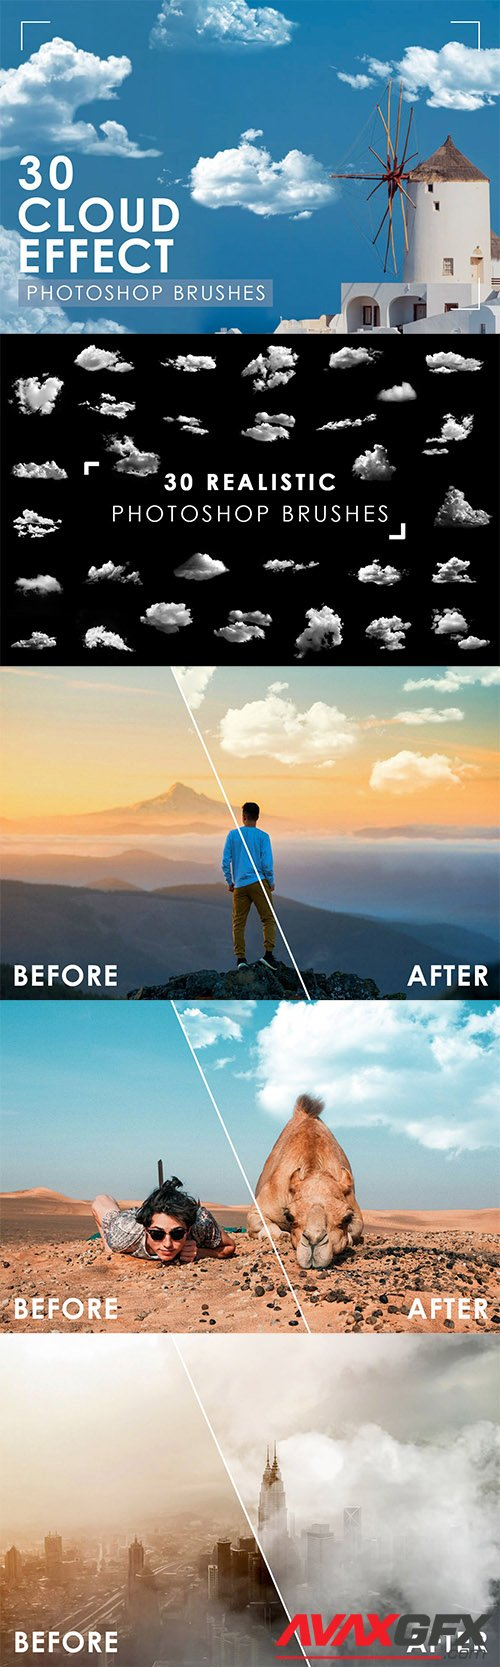 30 Realistic Cloud Photoshop Brushes